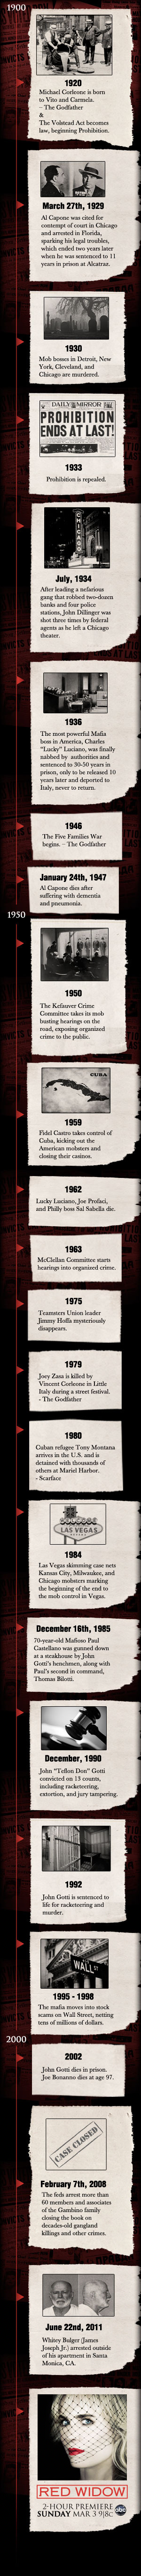 Century of Scandals timeline